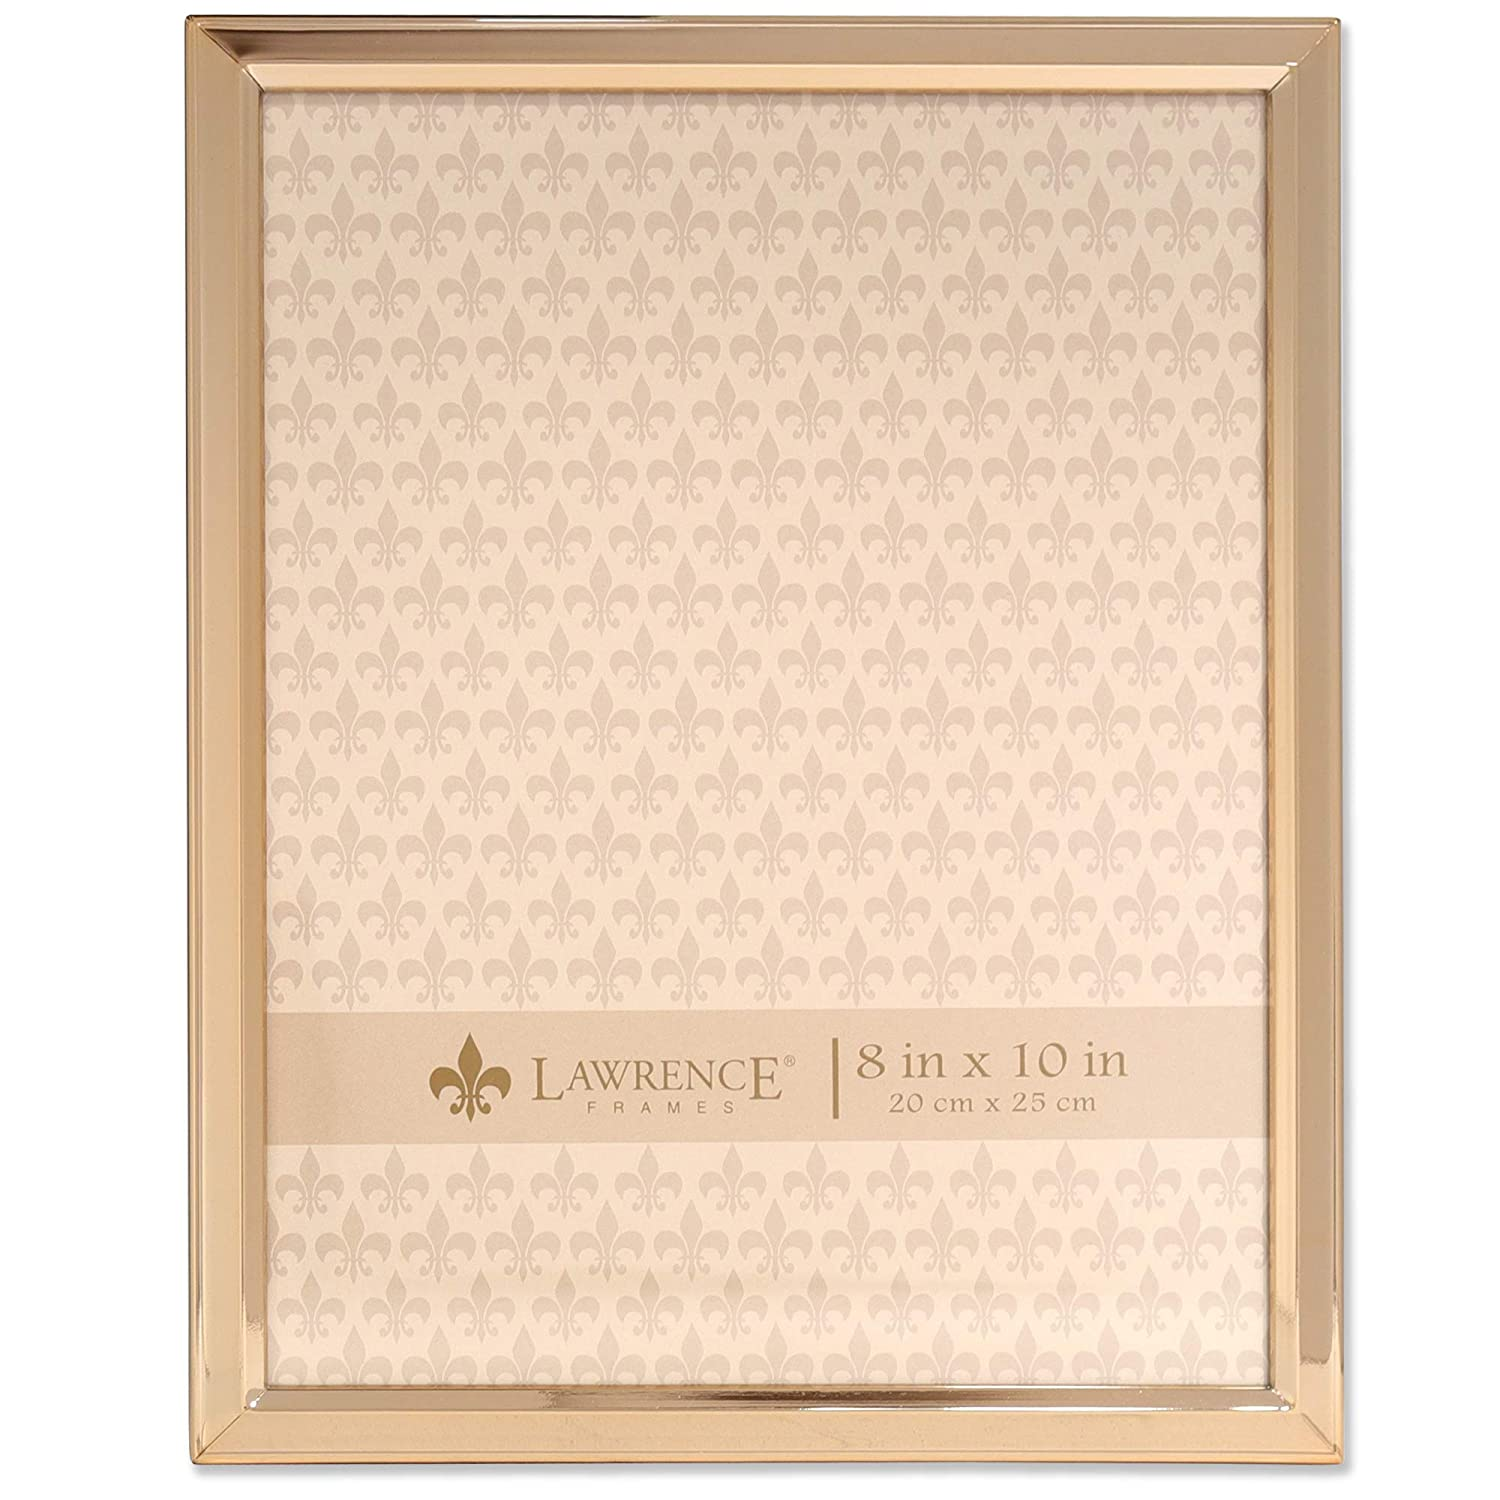 Amazoncom Lawrence Frames 8x10 Gold Metal Classic Bevel Picture